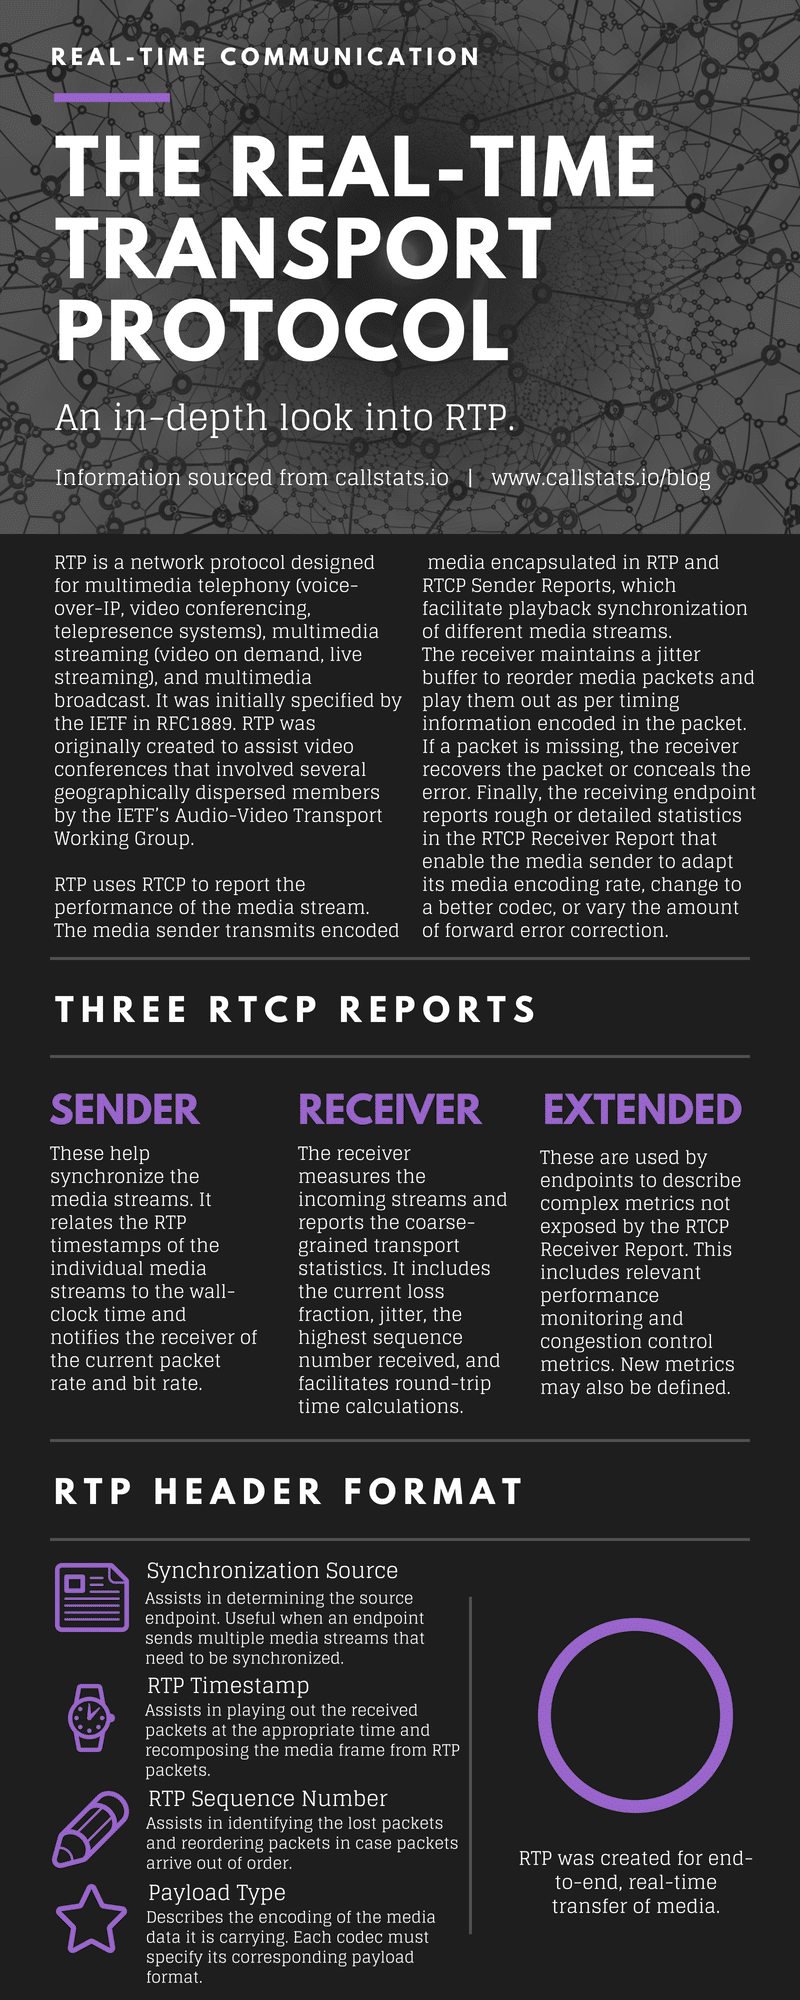 The Real-time Transport Protocol Infographic